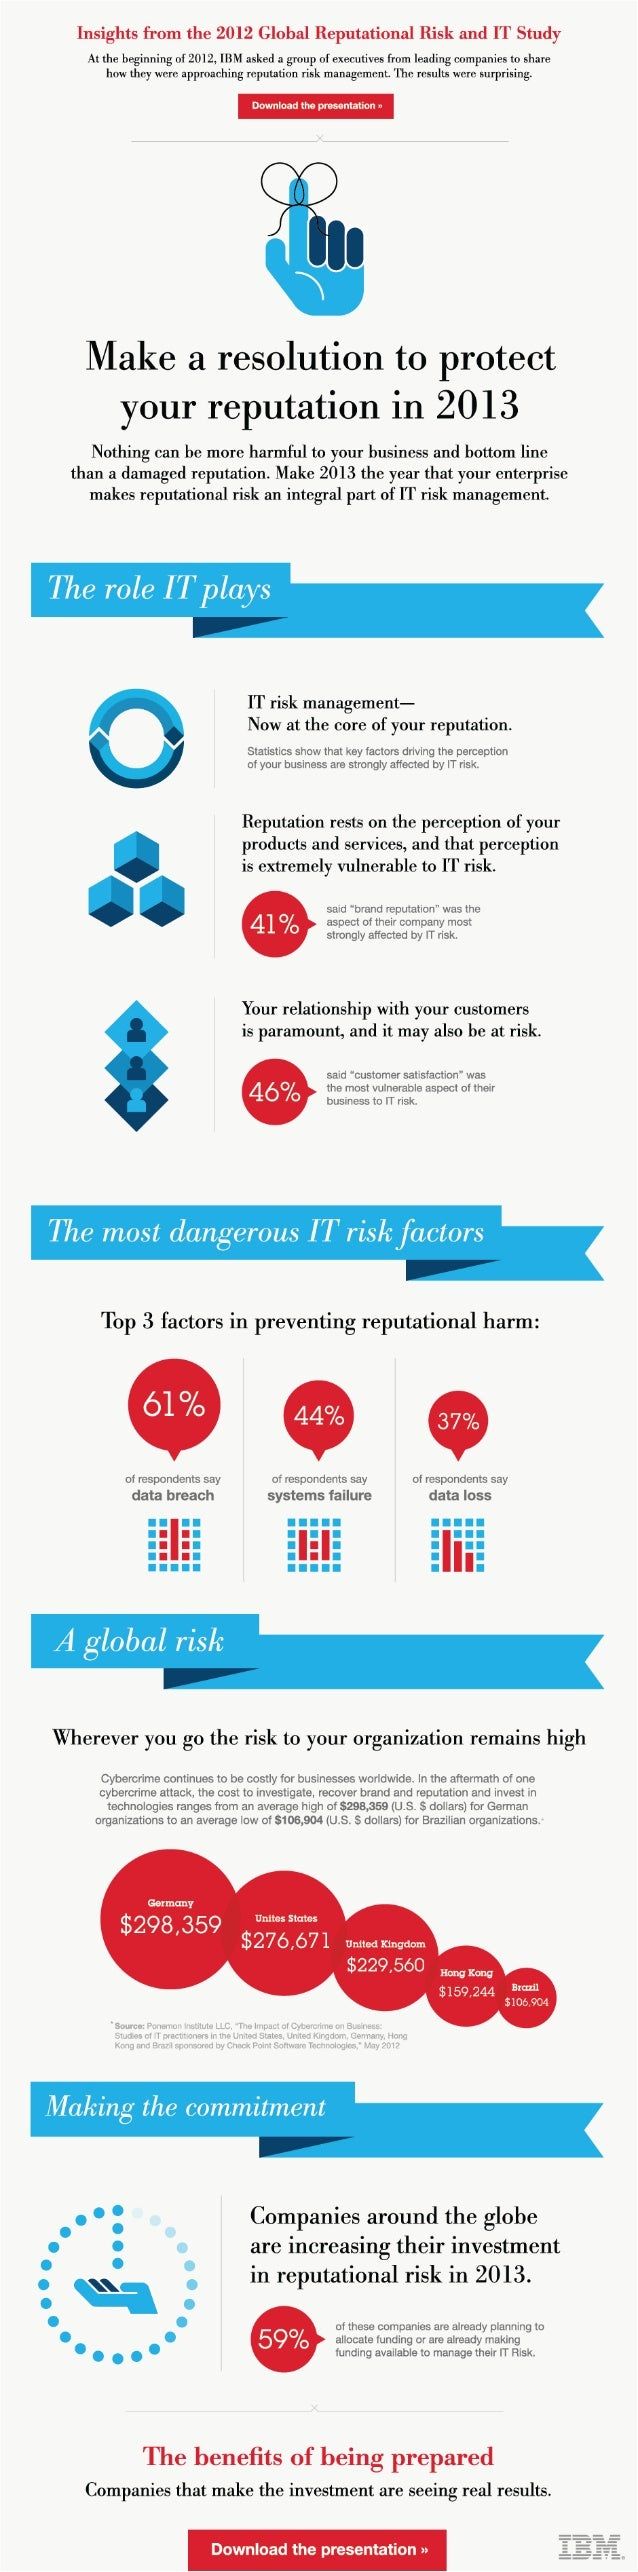 INFOGRAPHIC: Insights on Reputation and IT Risk